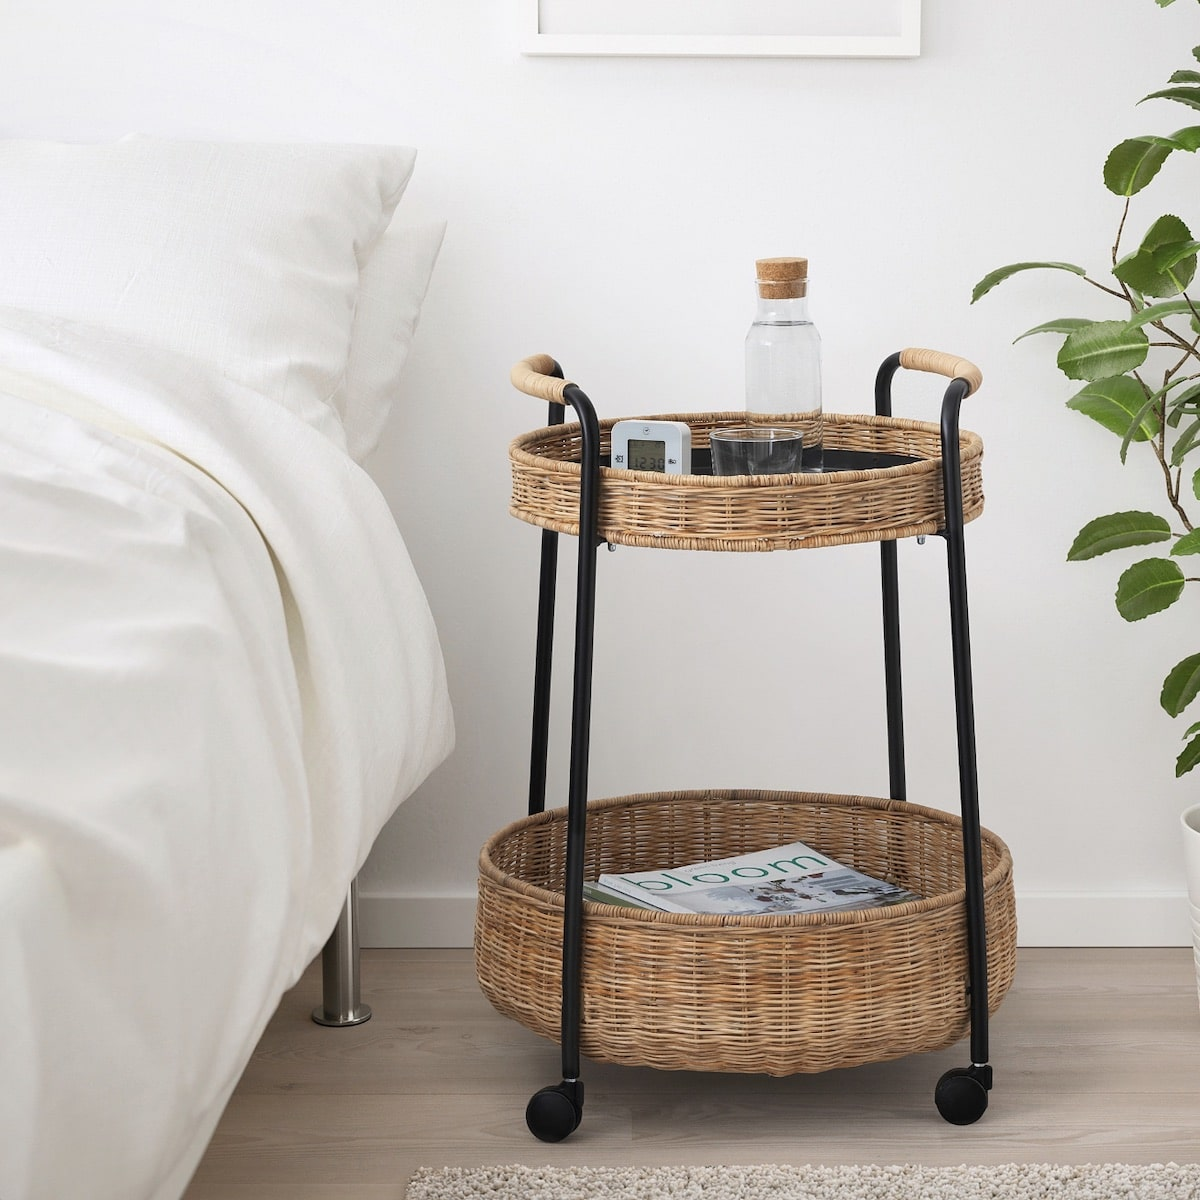 Latest IKEA product LUBBAN Rattan Trolley Table with Storage